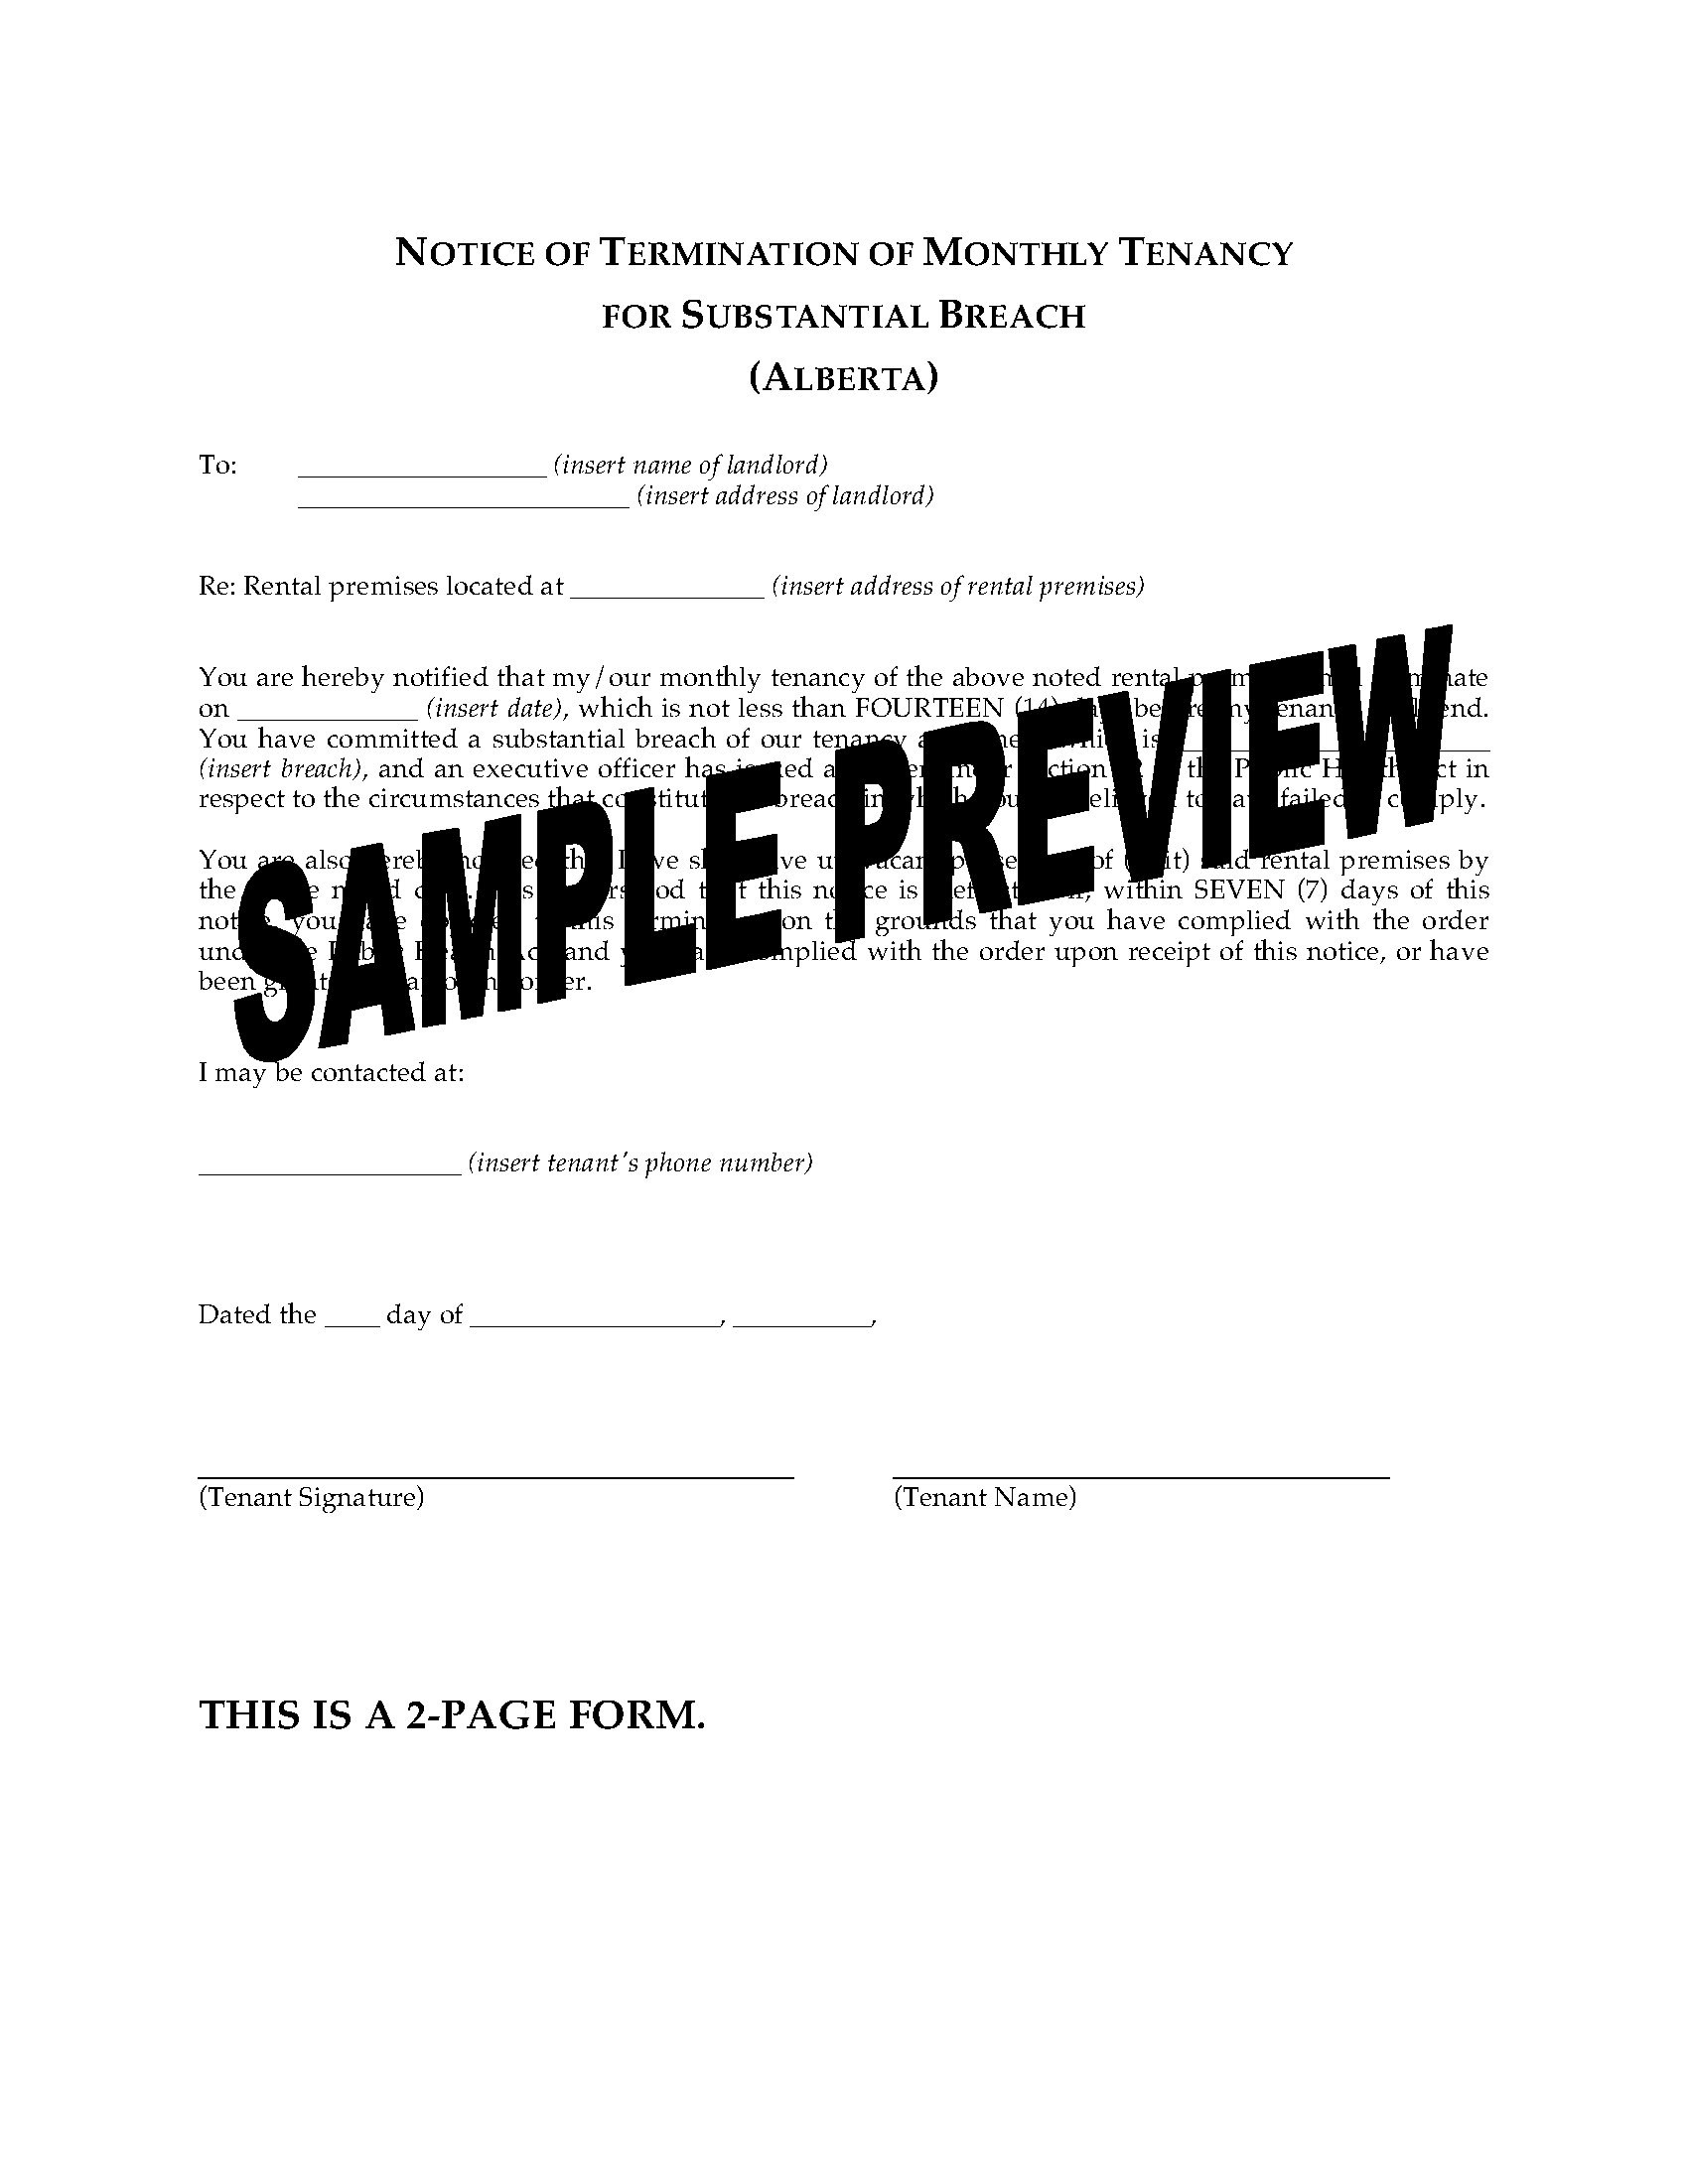 Notice Of Termination Of Tenancy form Excellent Alberta Notice Of Termination Of Tenancy Breach by Landlord